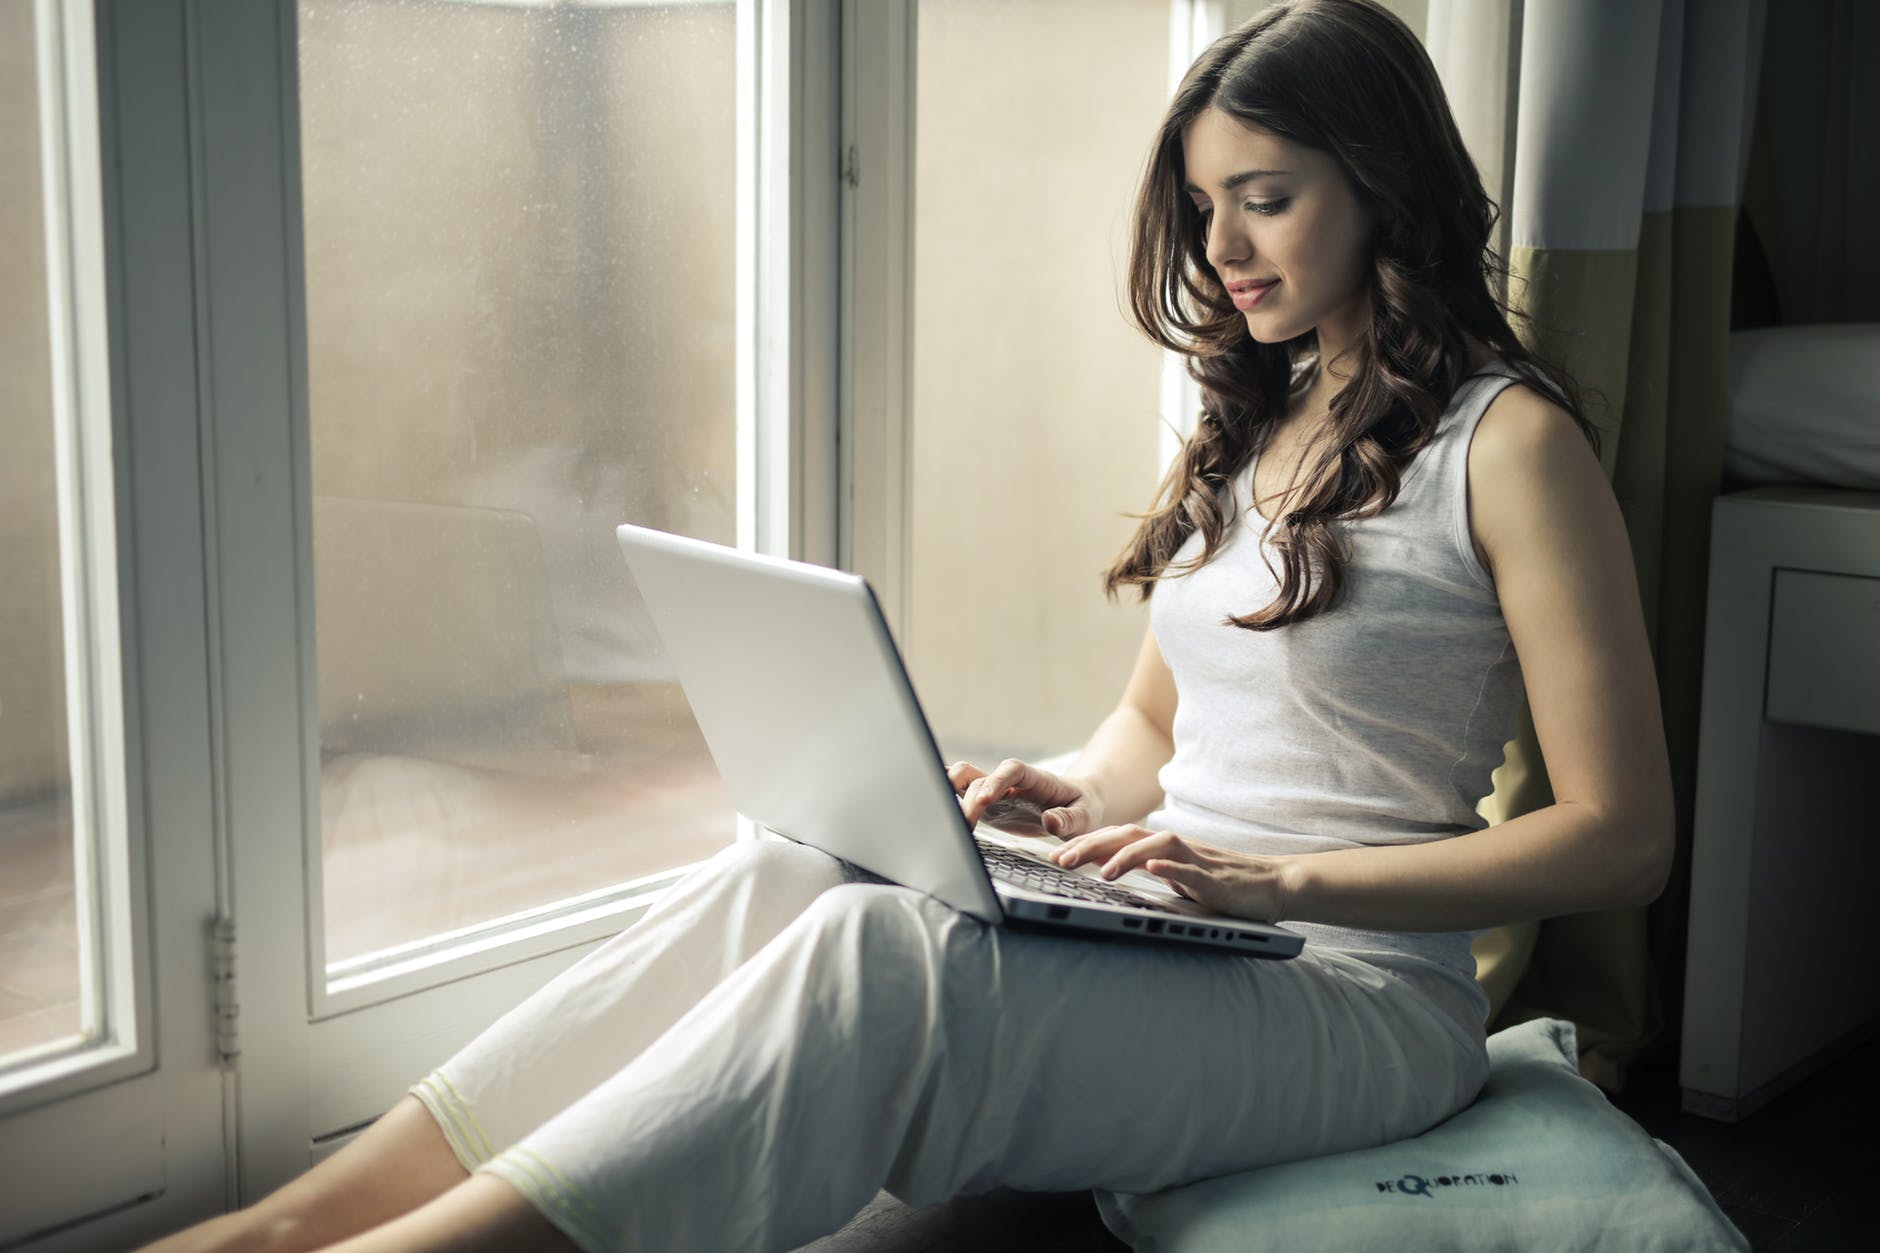 A woman chatting with strangers online, following safety guidelines including never revealing personal information.